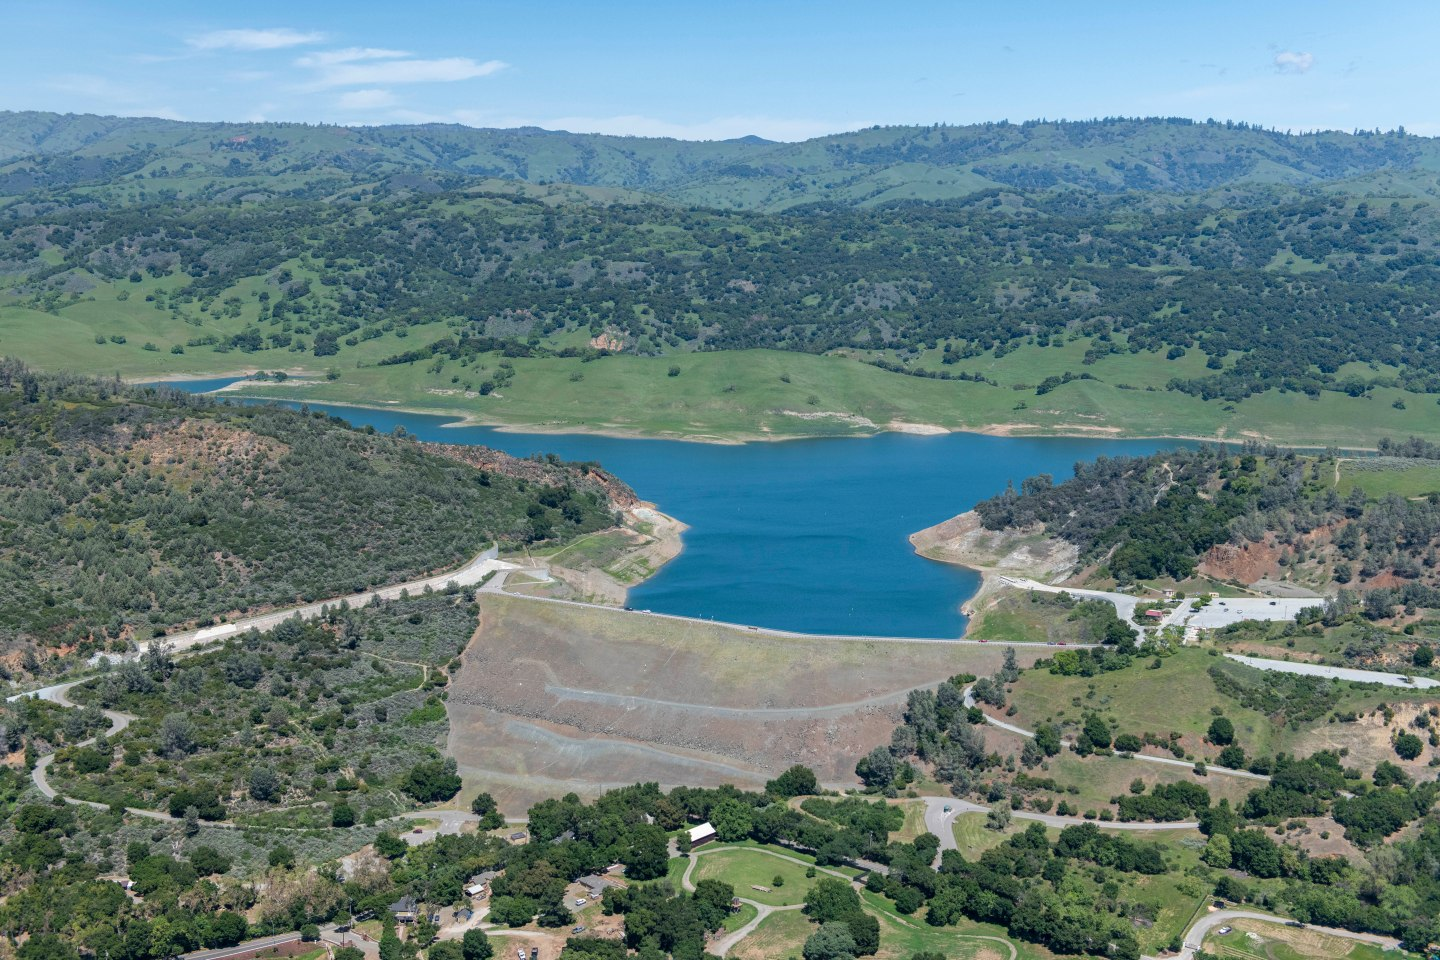 Anderson Dam aerial view